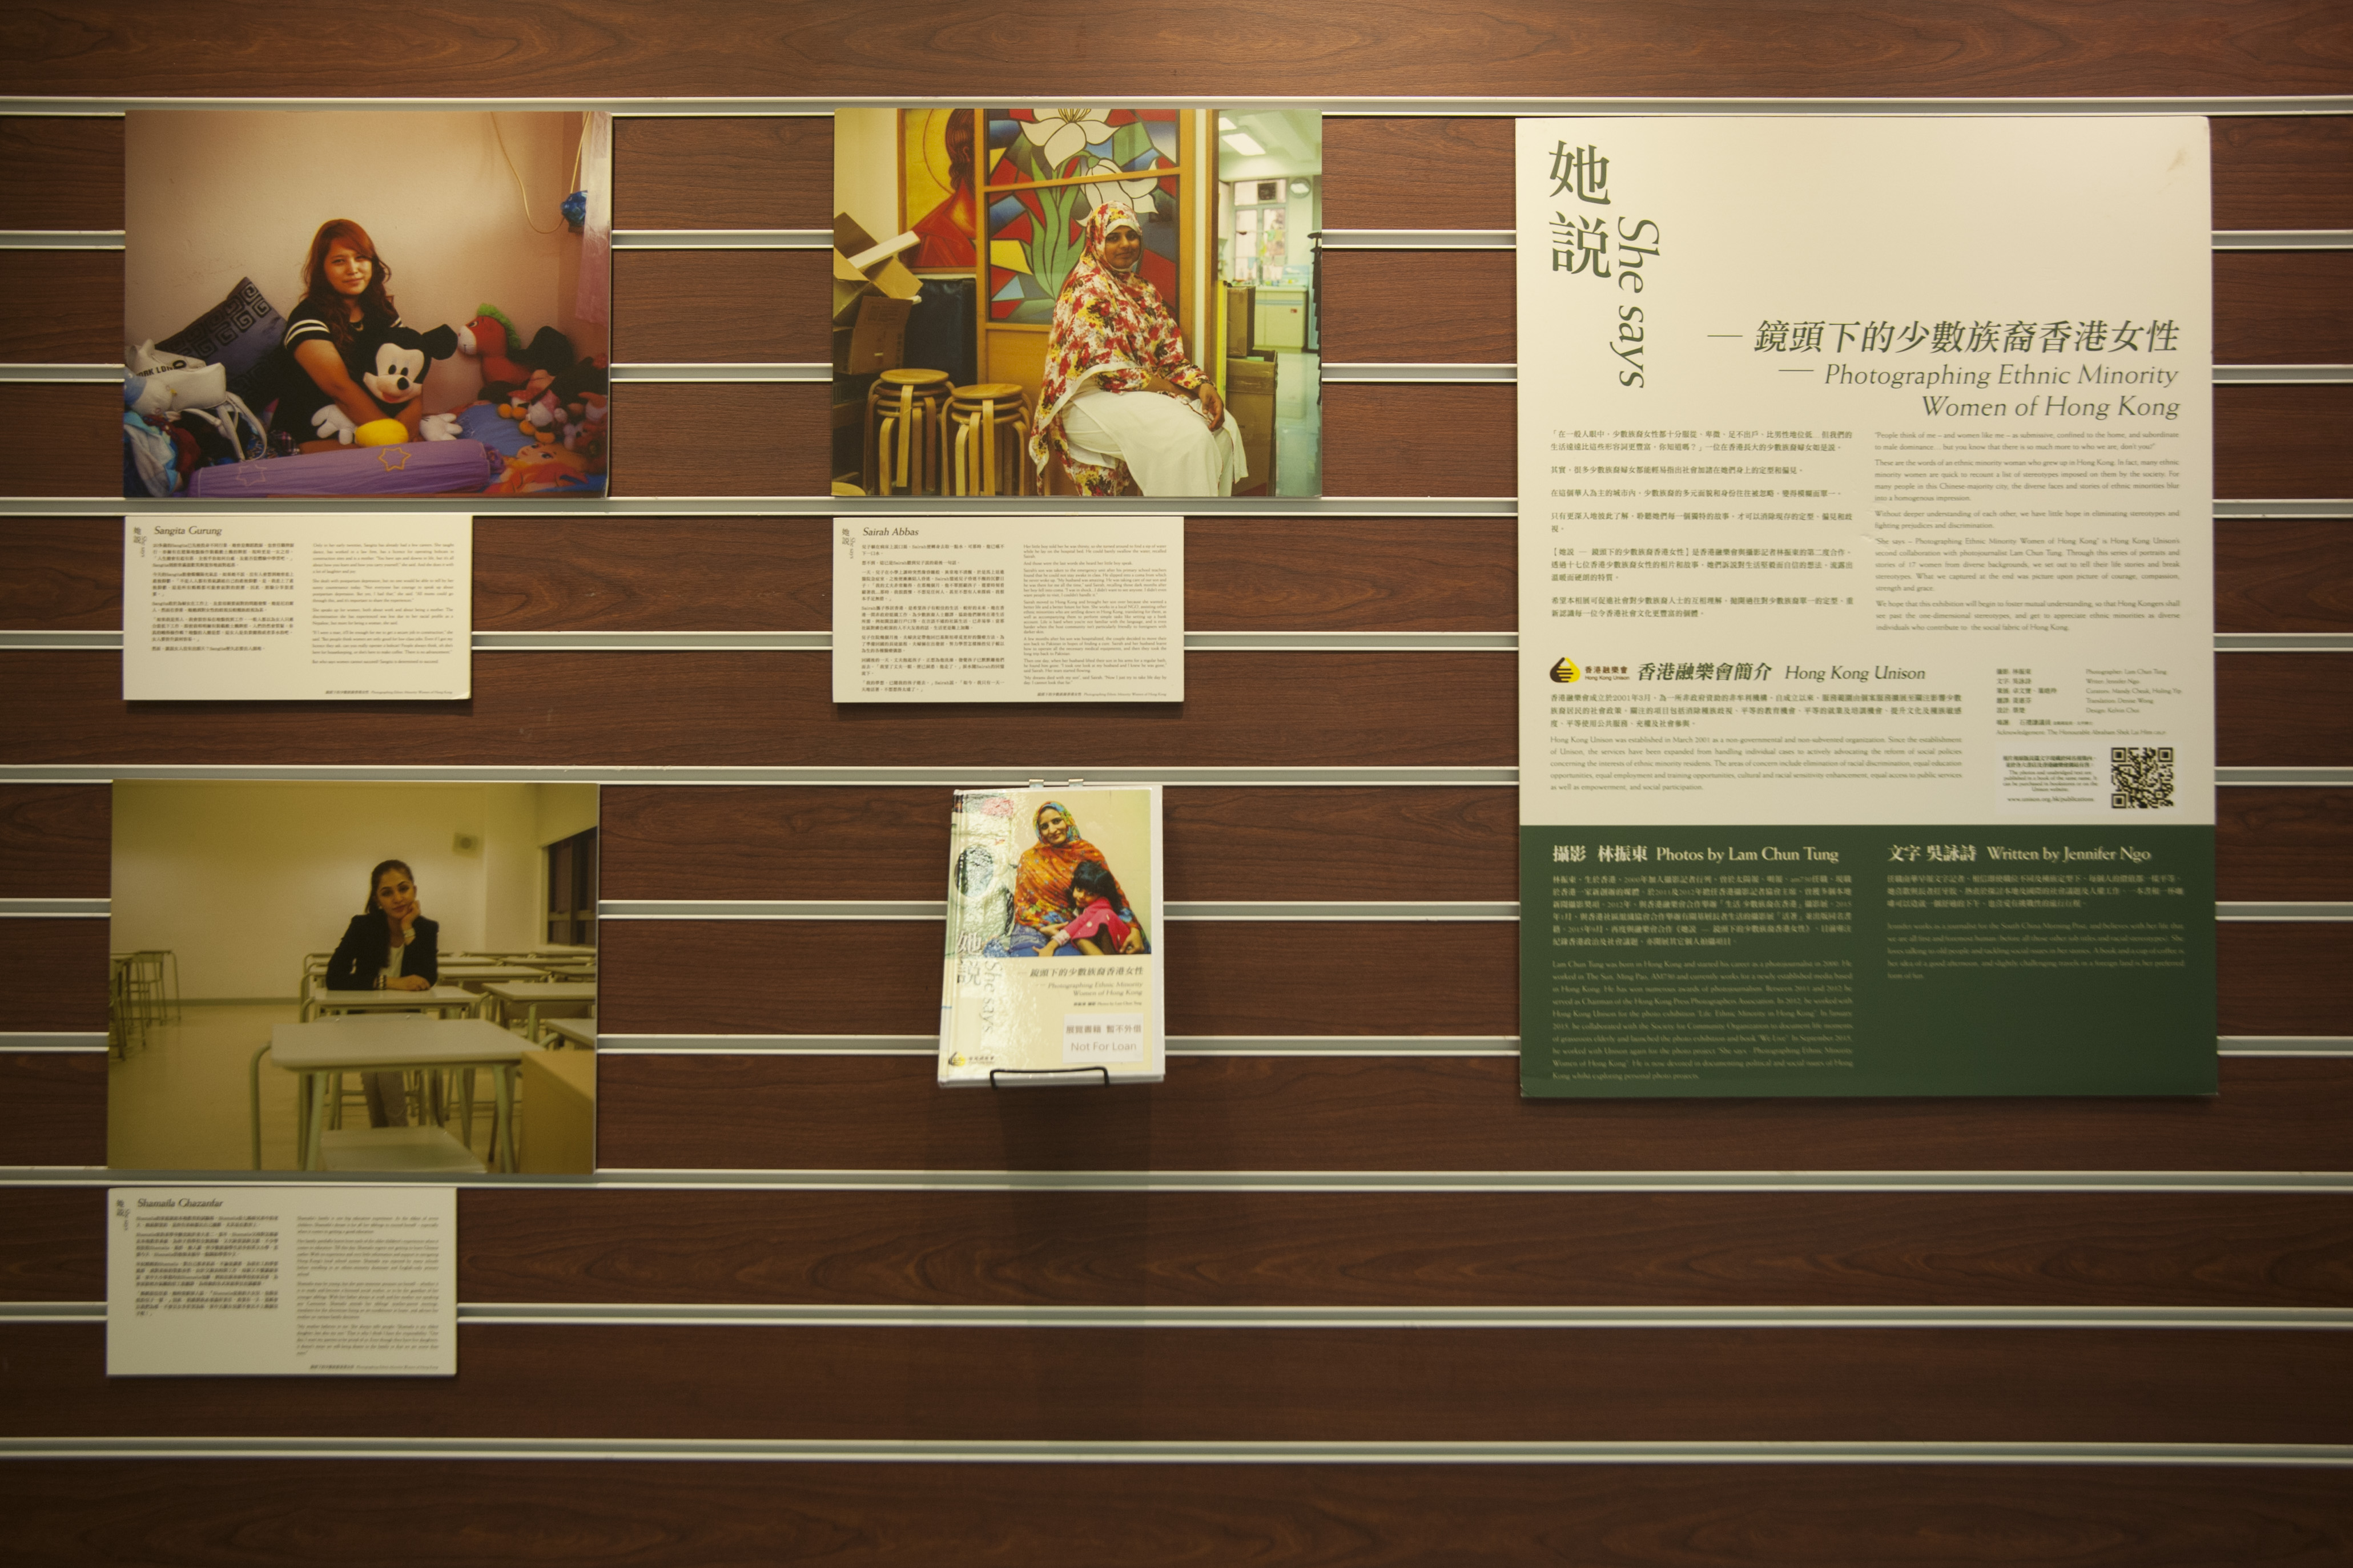 She Says - Photographing Ethnic Minority Women of Hong Kong